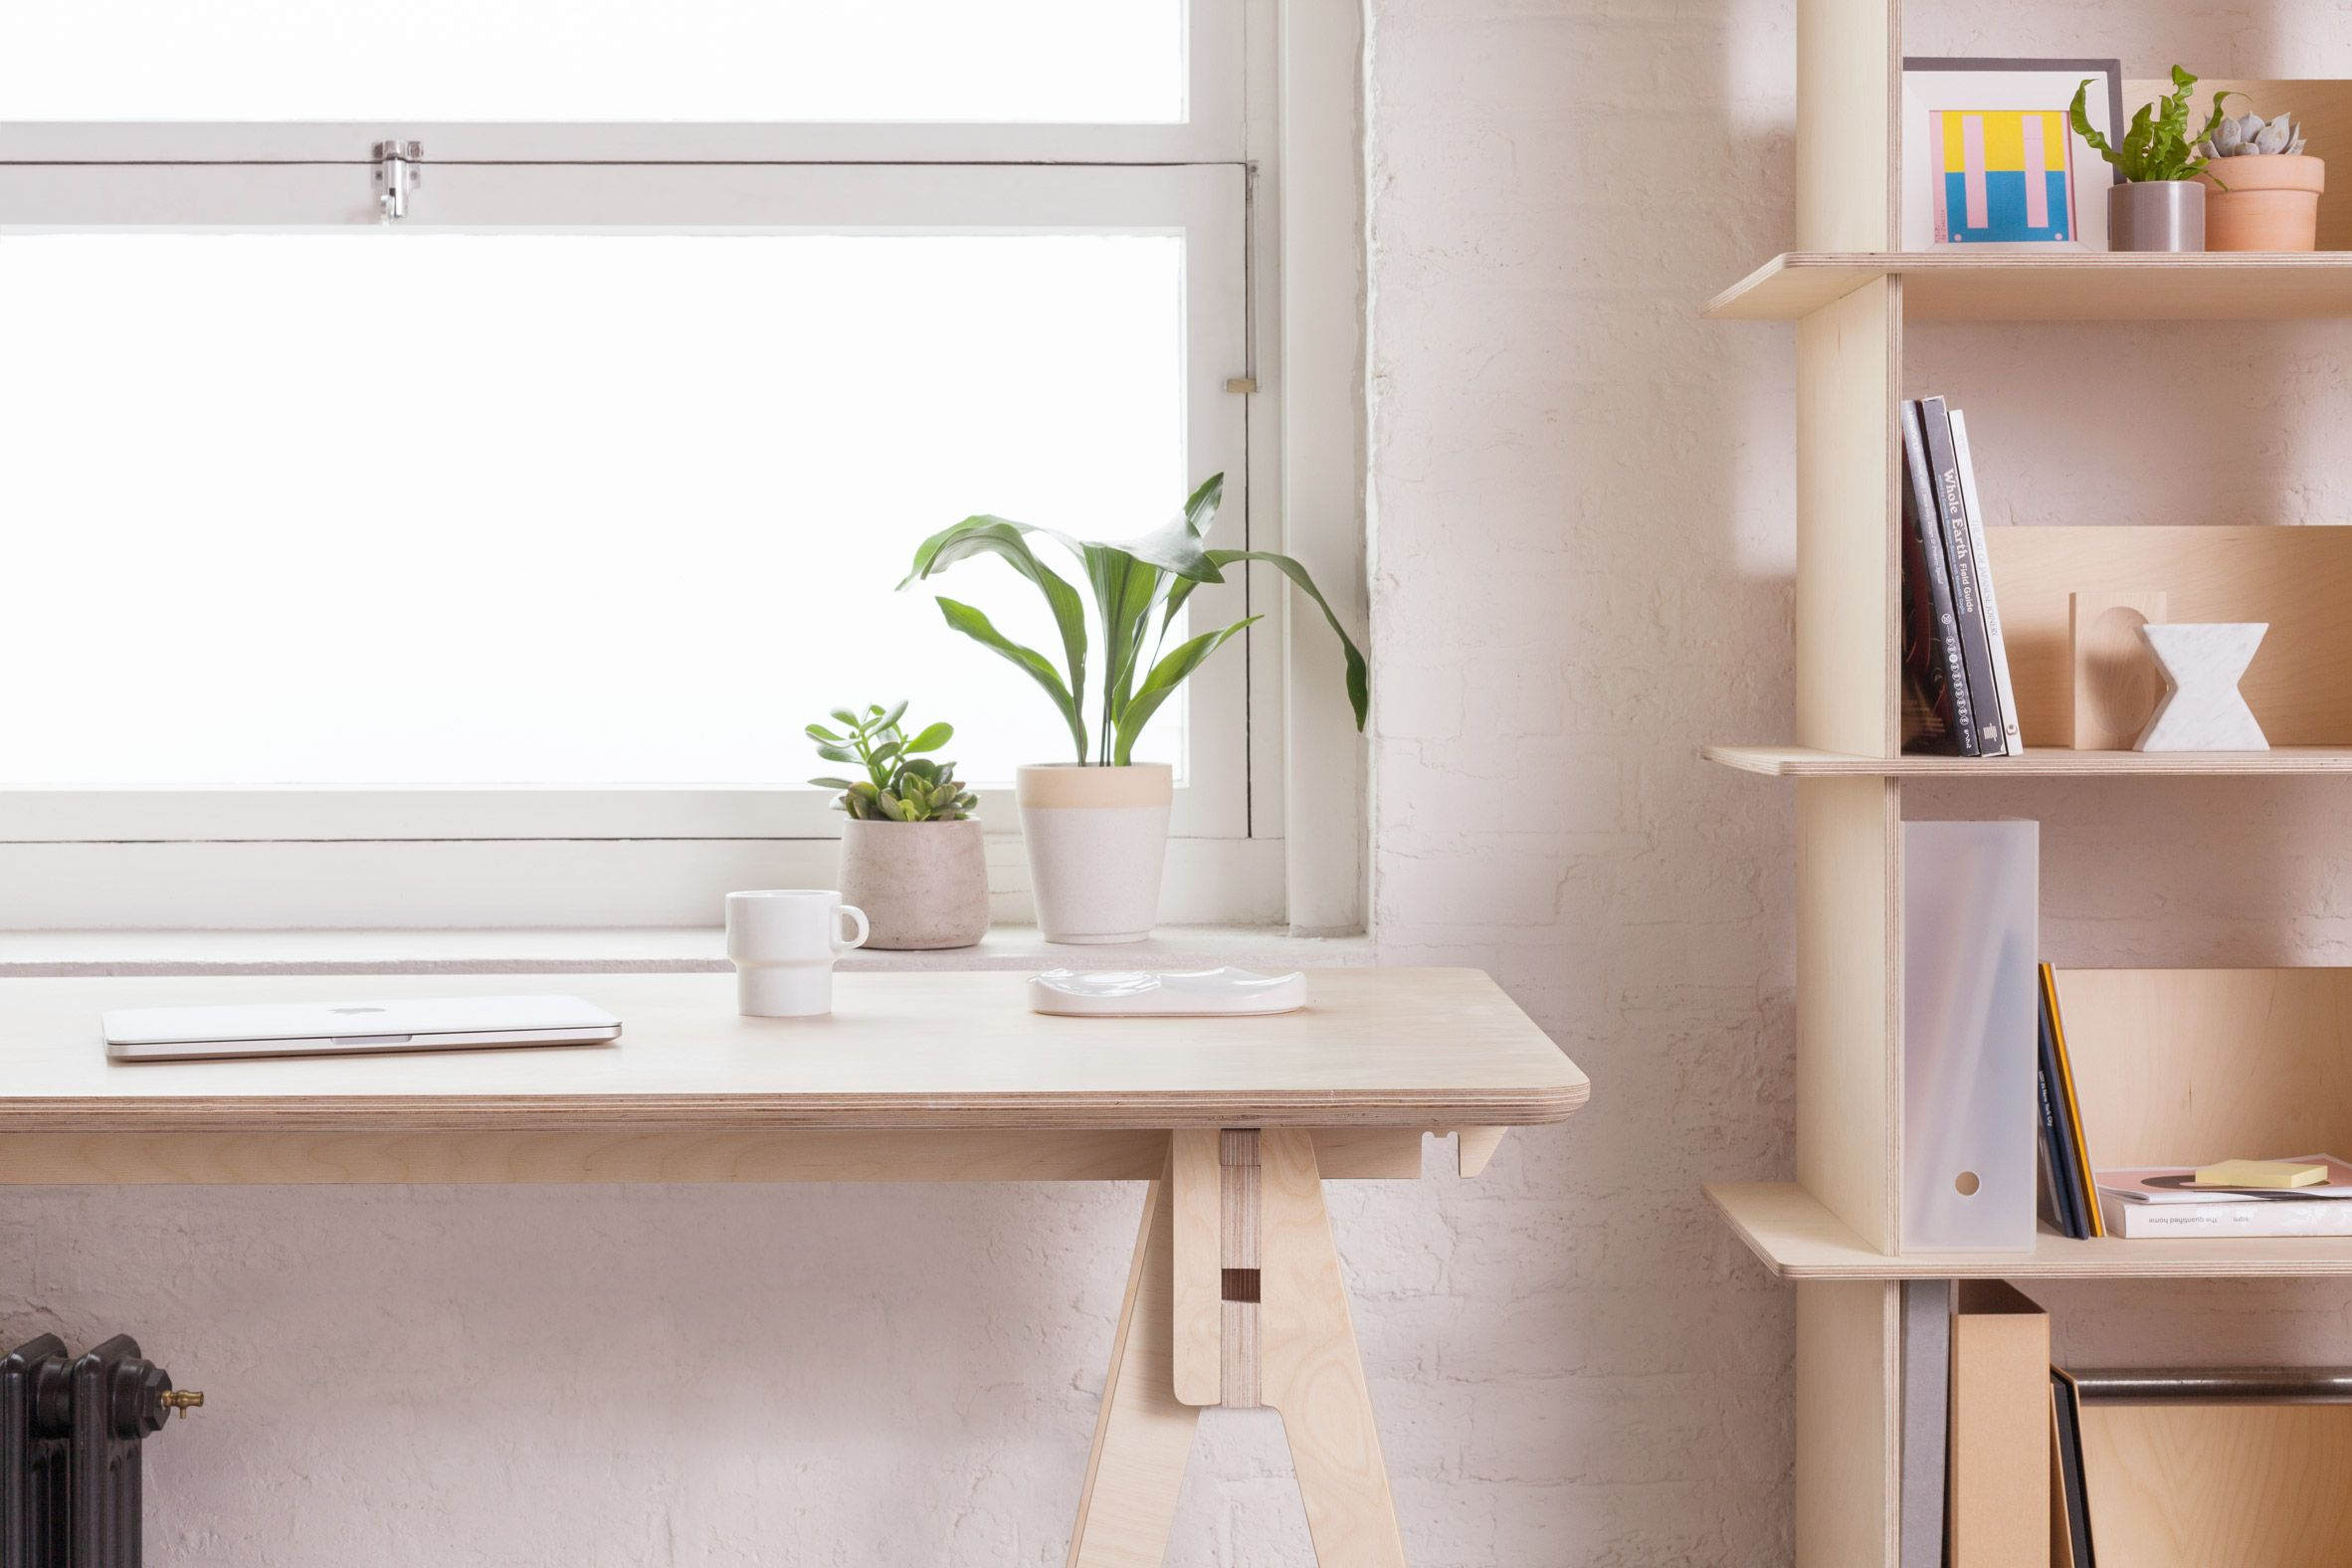 Opendesk Launches Shelf And Desk That Can Be Assembled Tool Free Muebles Baratos Estanteria Muebles